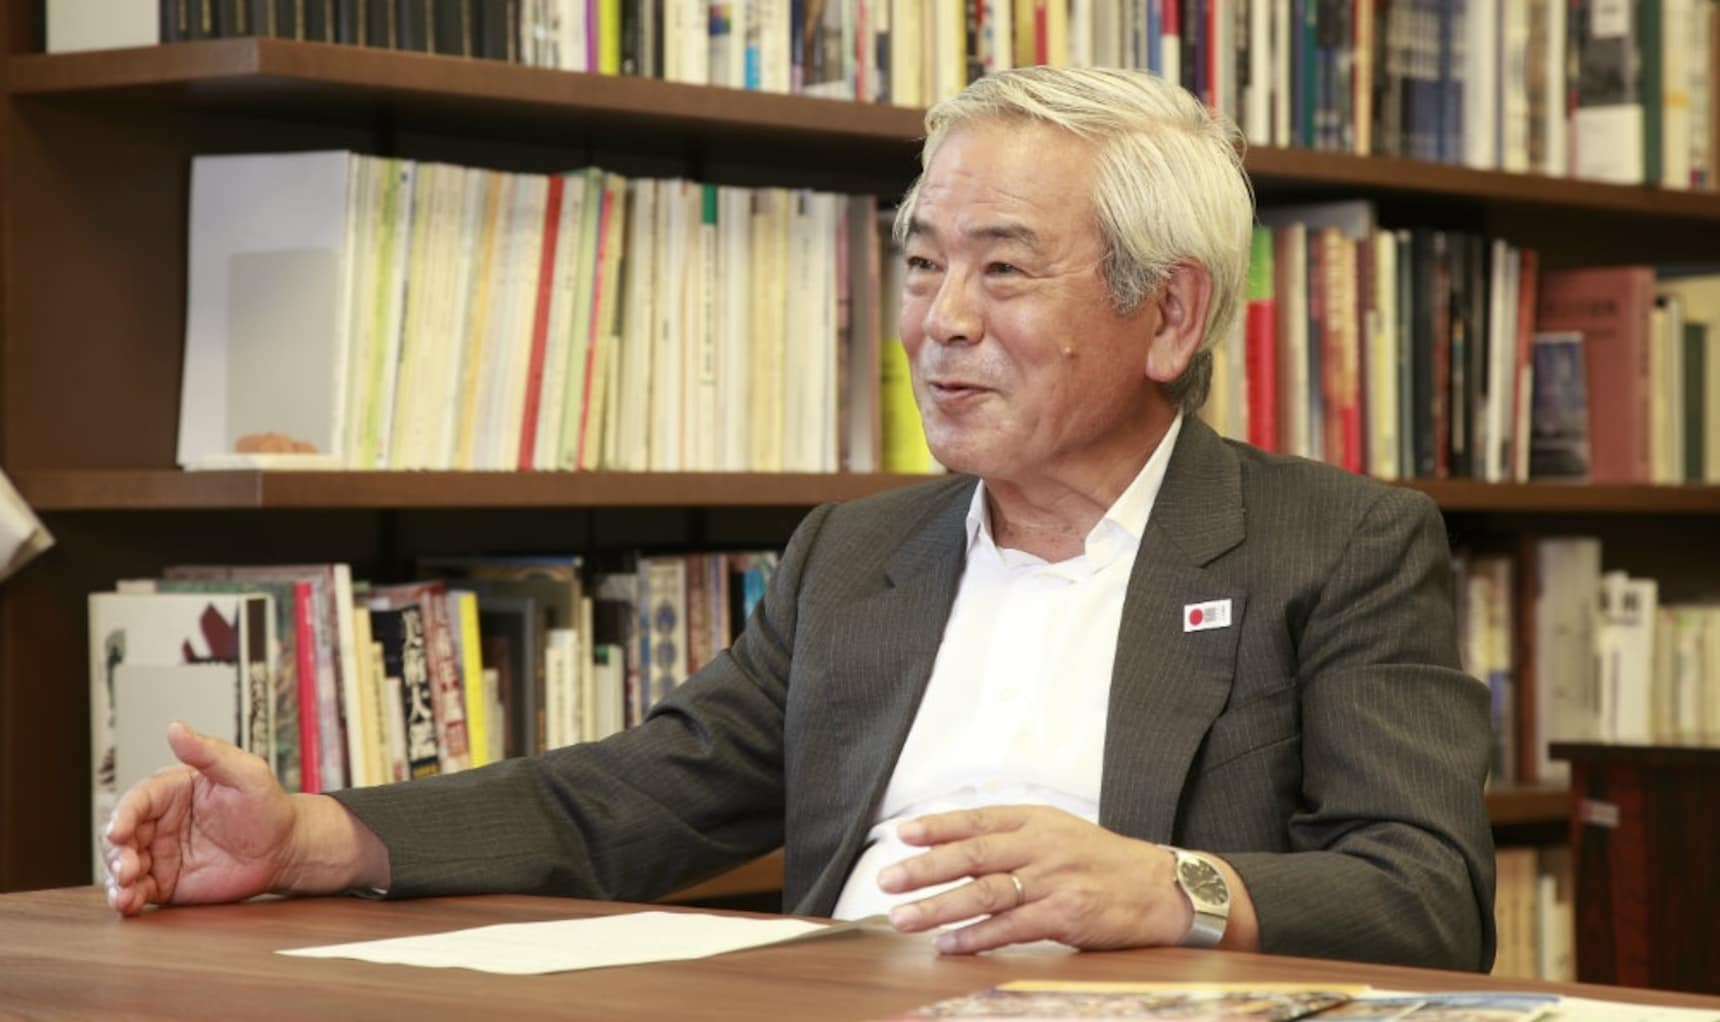 Masanori Aoyagi on Japan's World Heritage